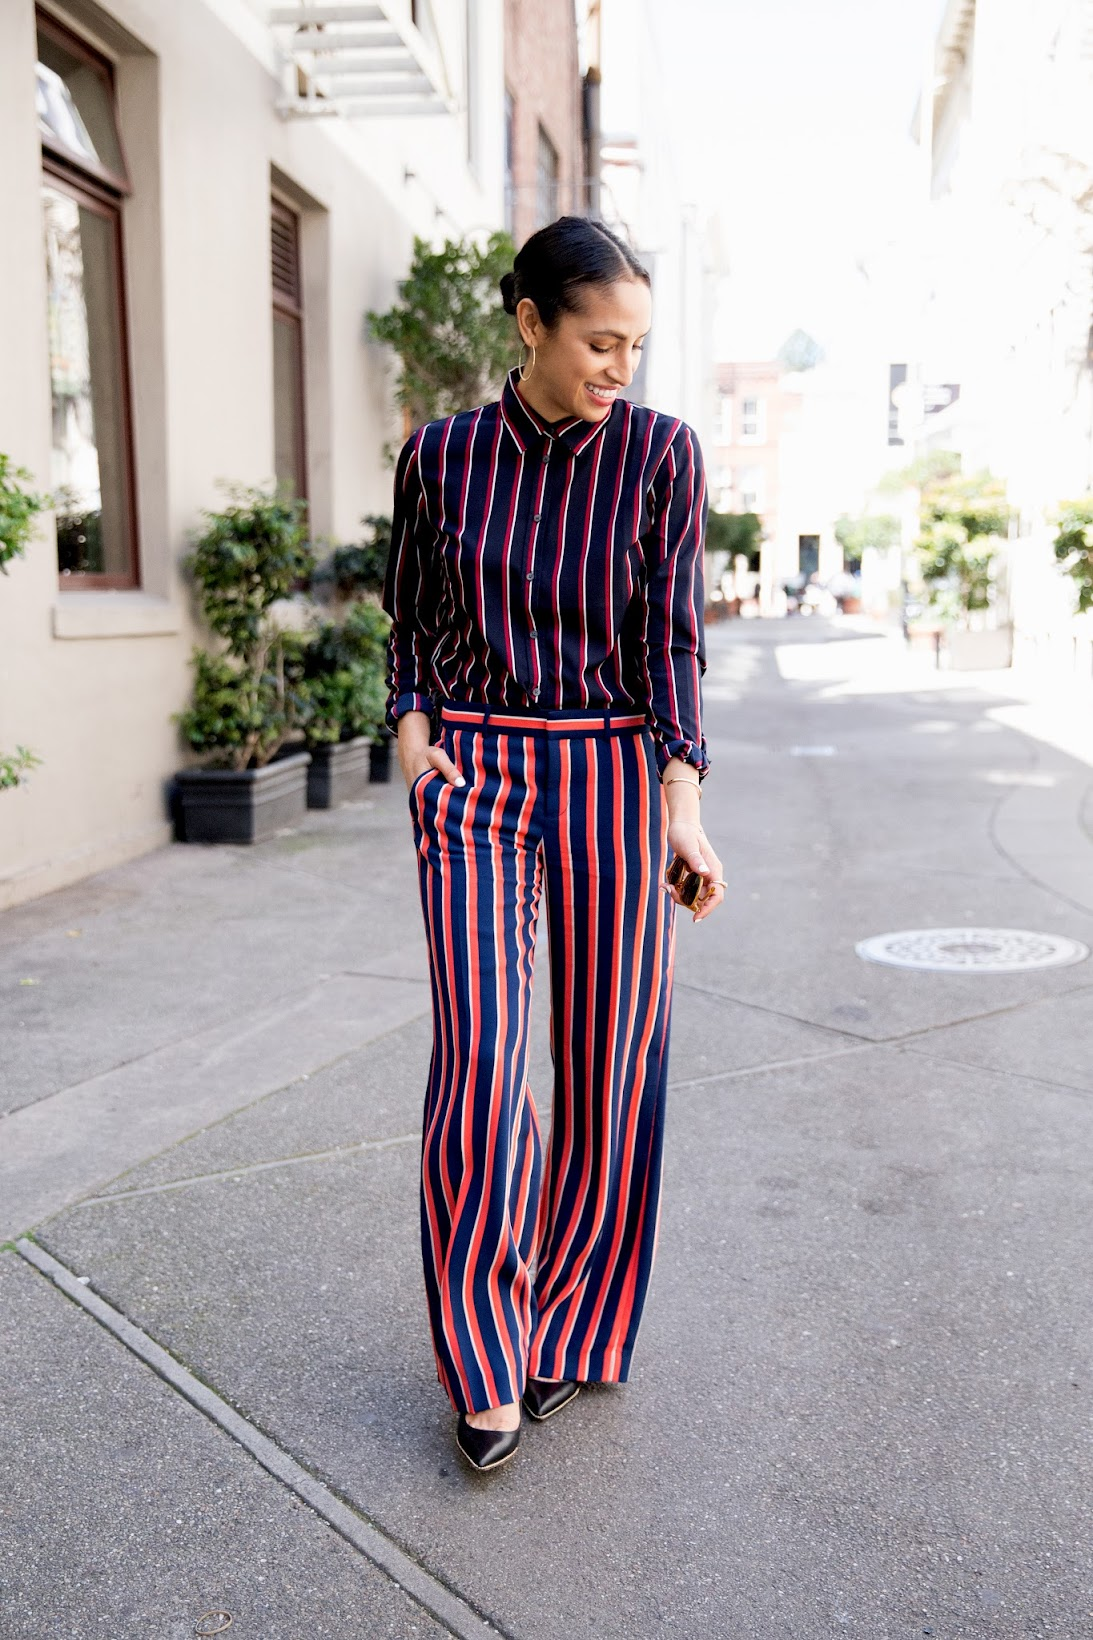 Banana Republic, stripes on stripes, what moves me, sponsored post , work chic looks